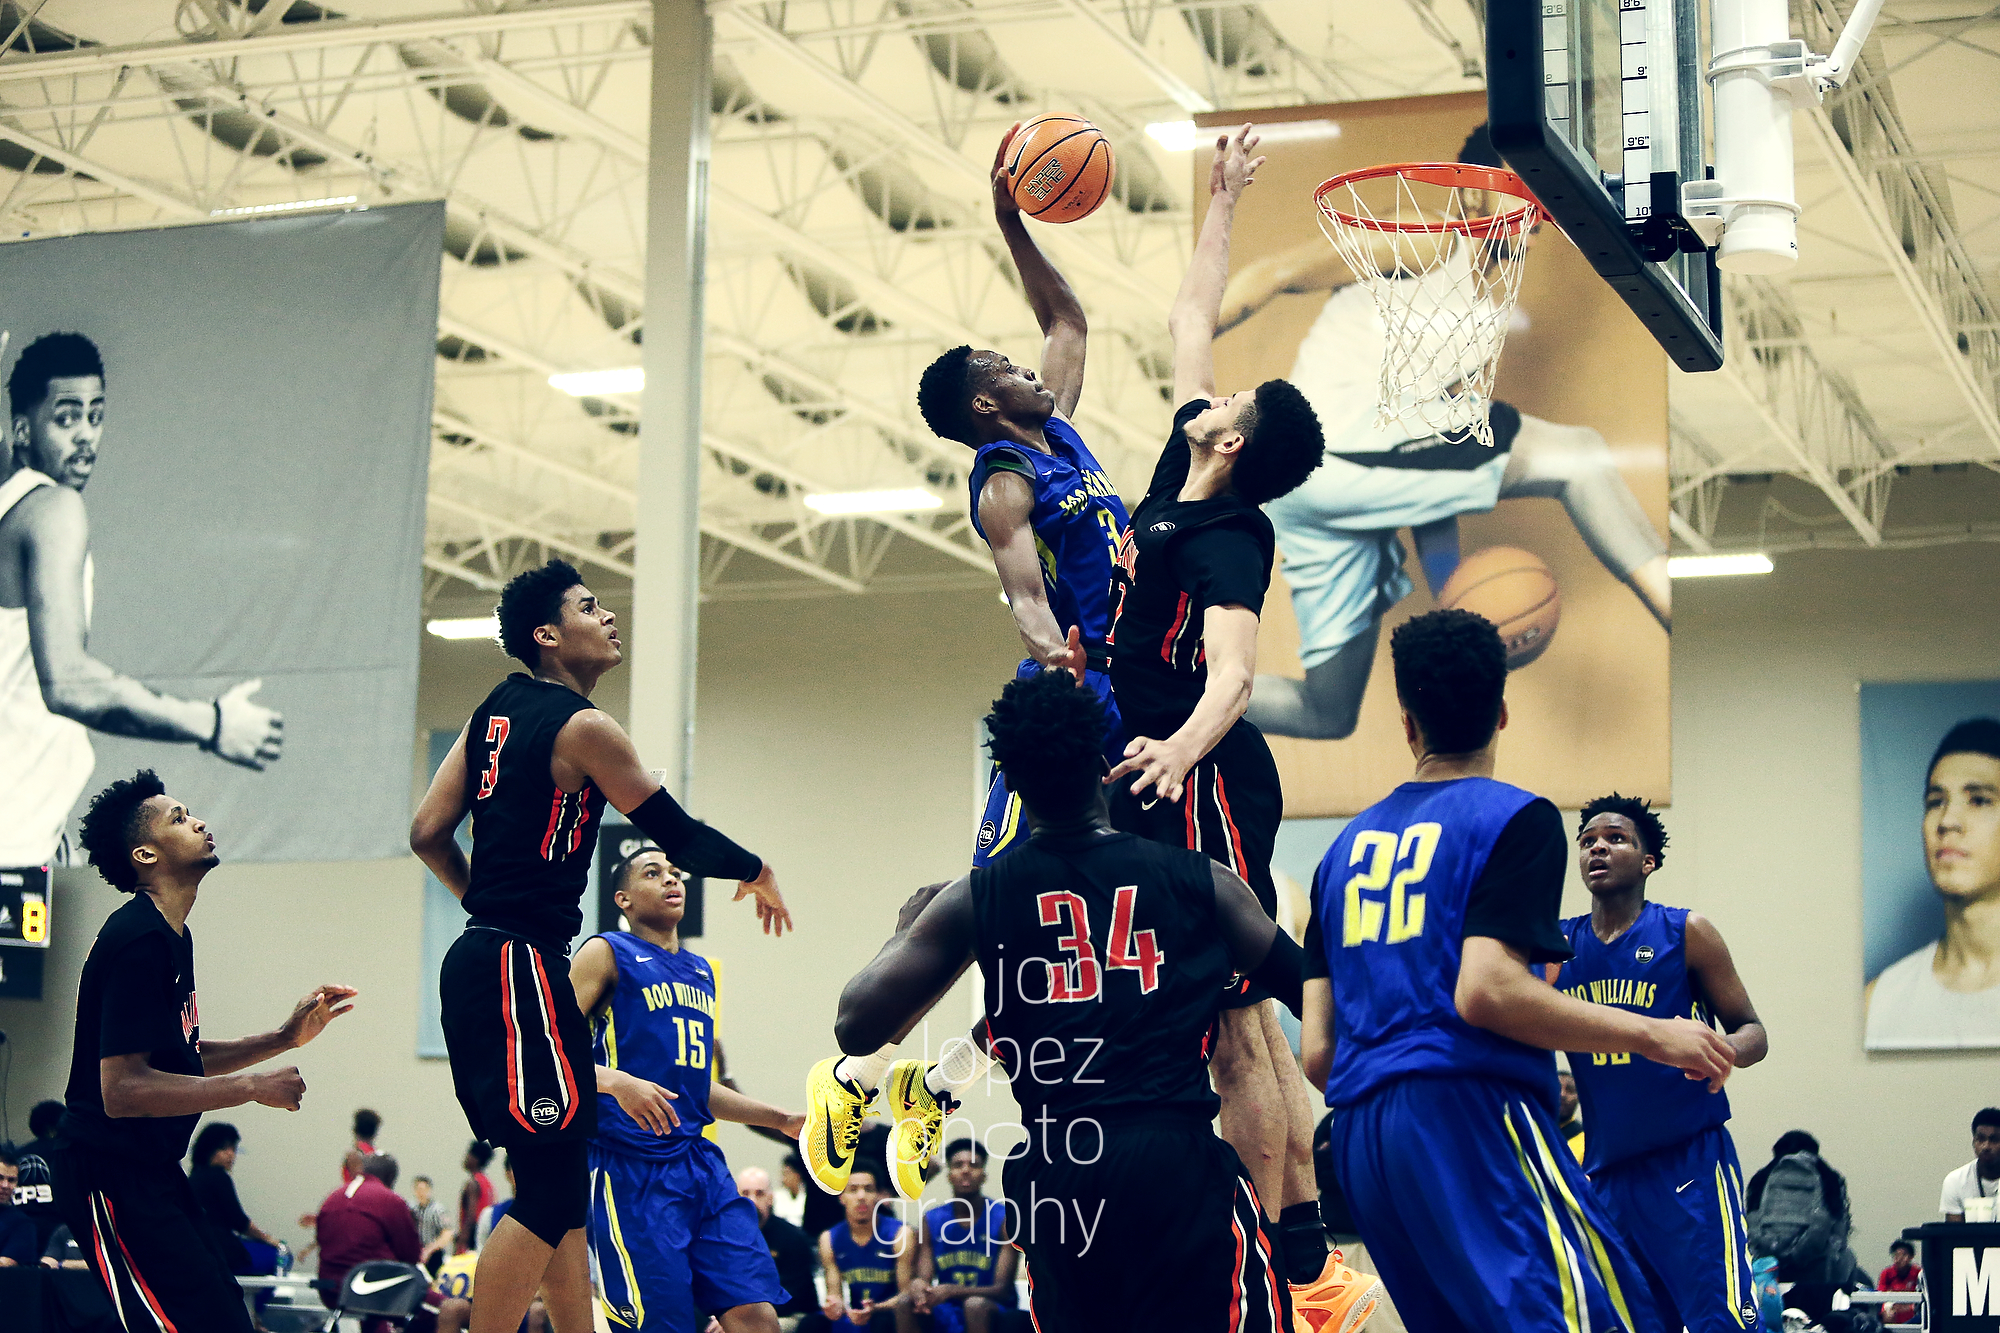 Matt Coleman of Boo Williams put this defender on the wrong side of poster during the EYBL's stop in Indiana.